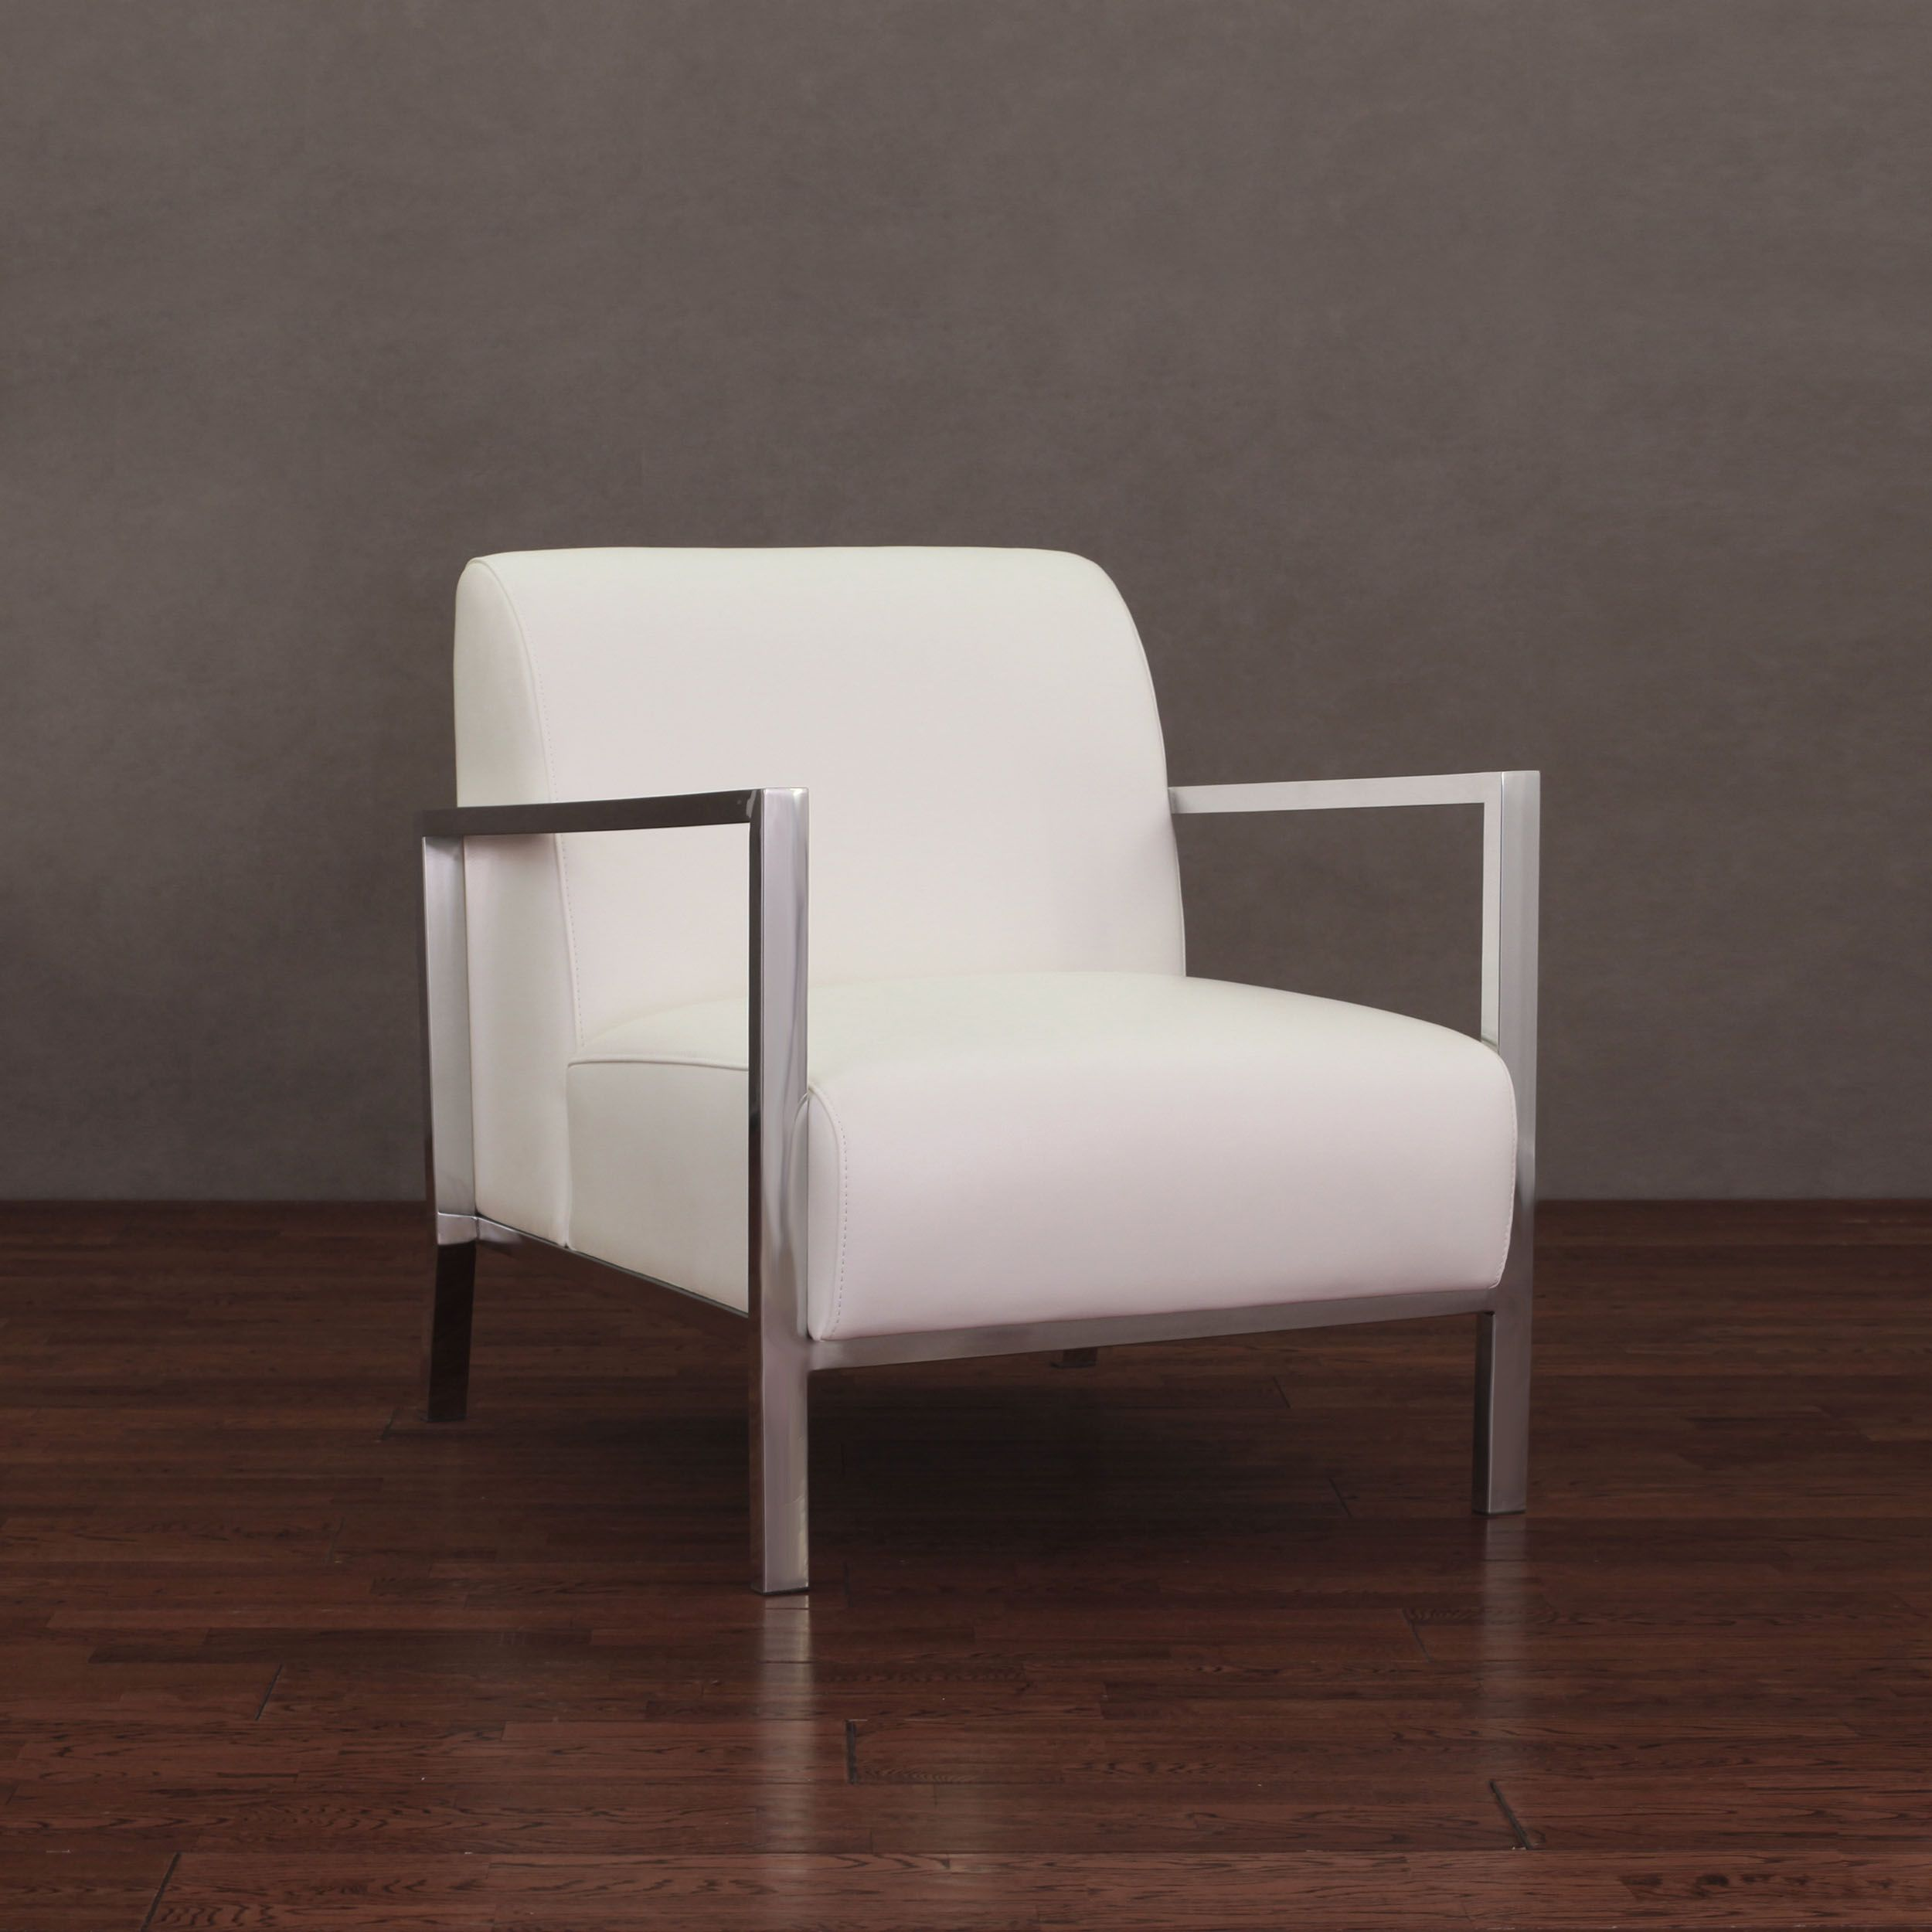 White Modern Chair Give Any Room A Touch Of Modern Style With This White